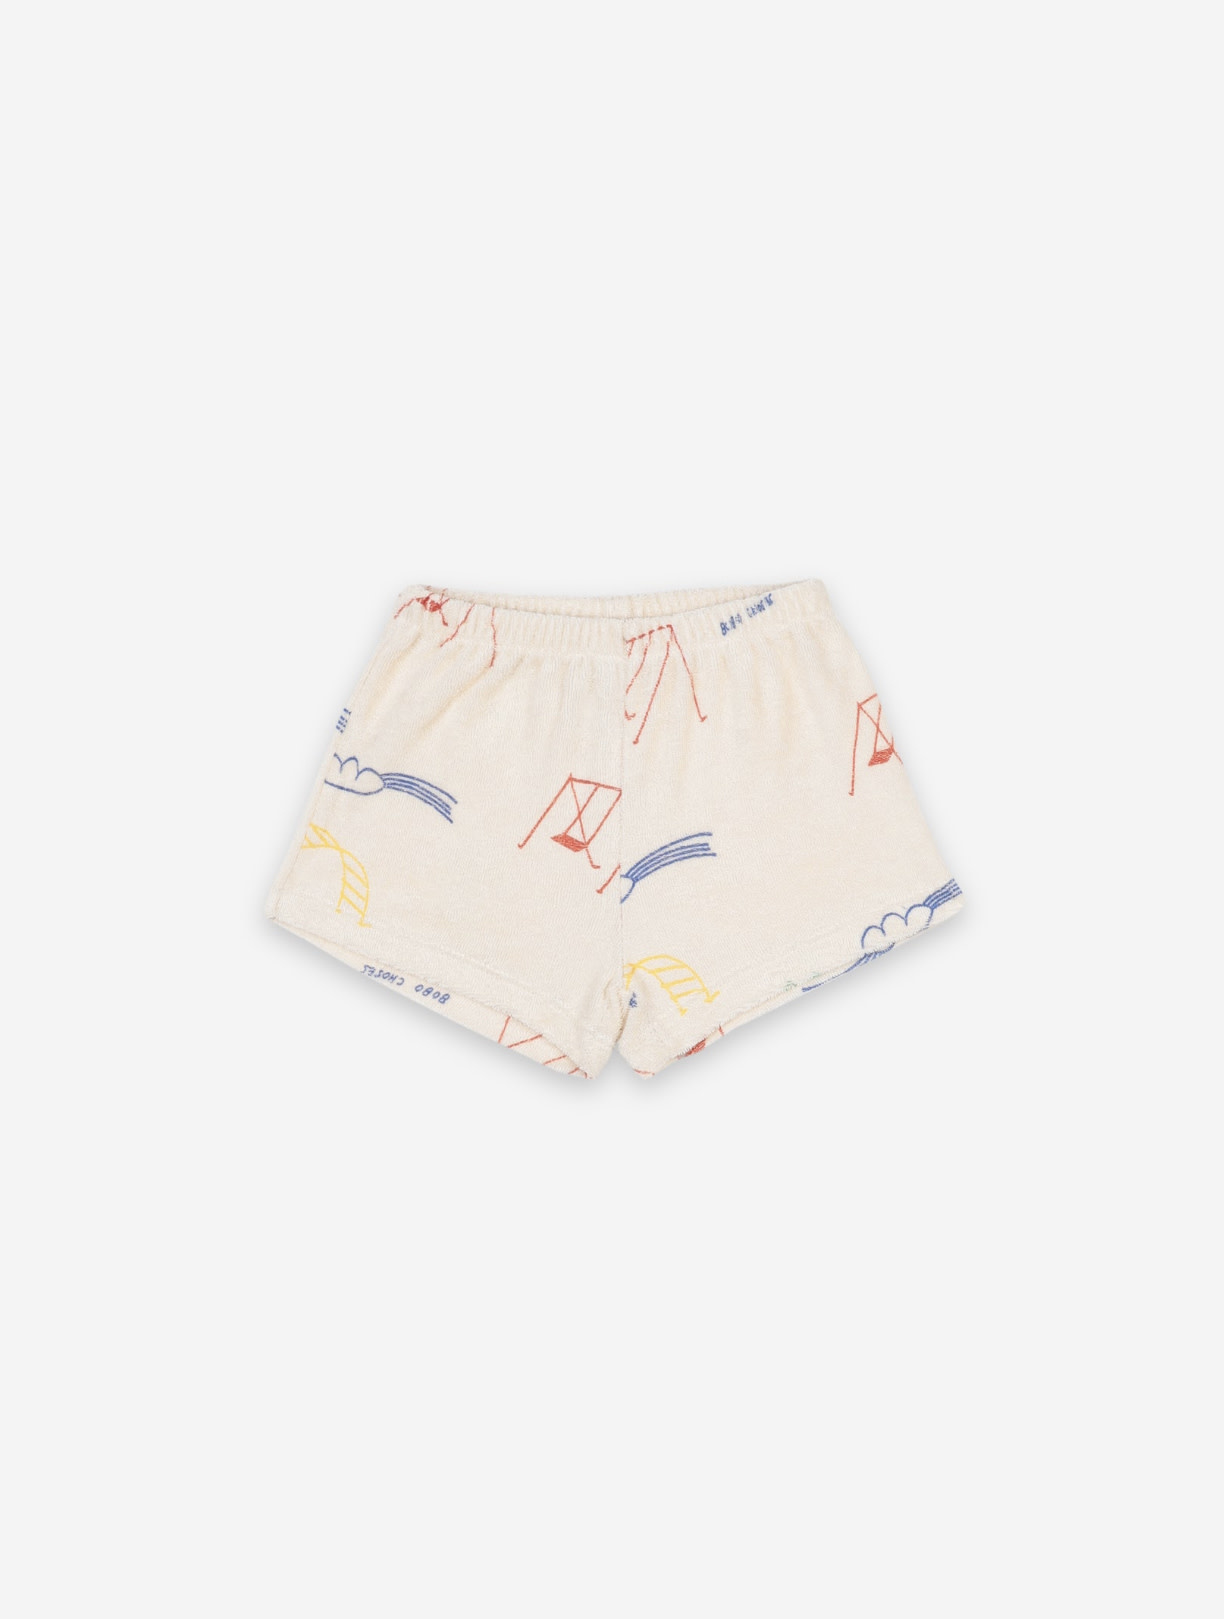 BOBO CHOSES Playground All Over  Baby Shorts